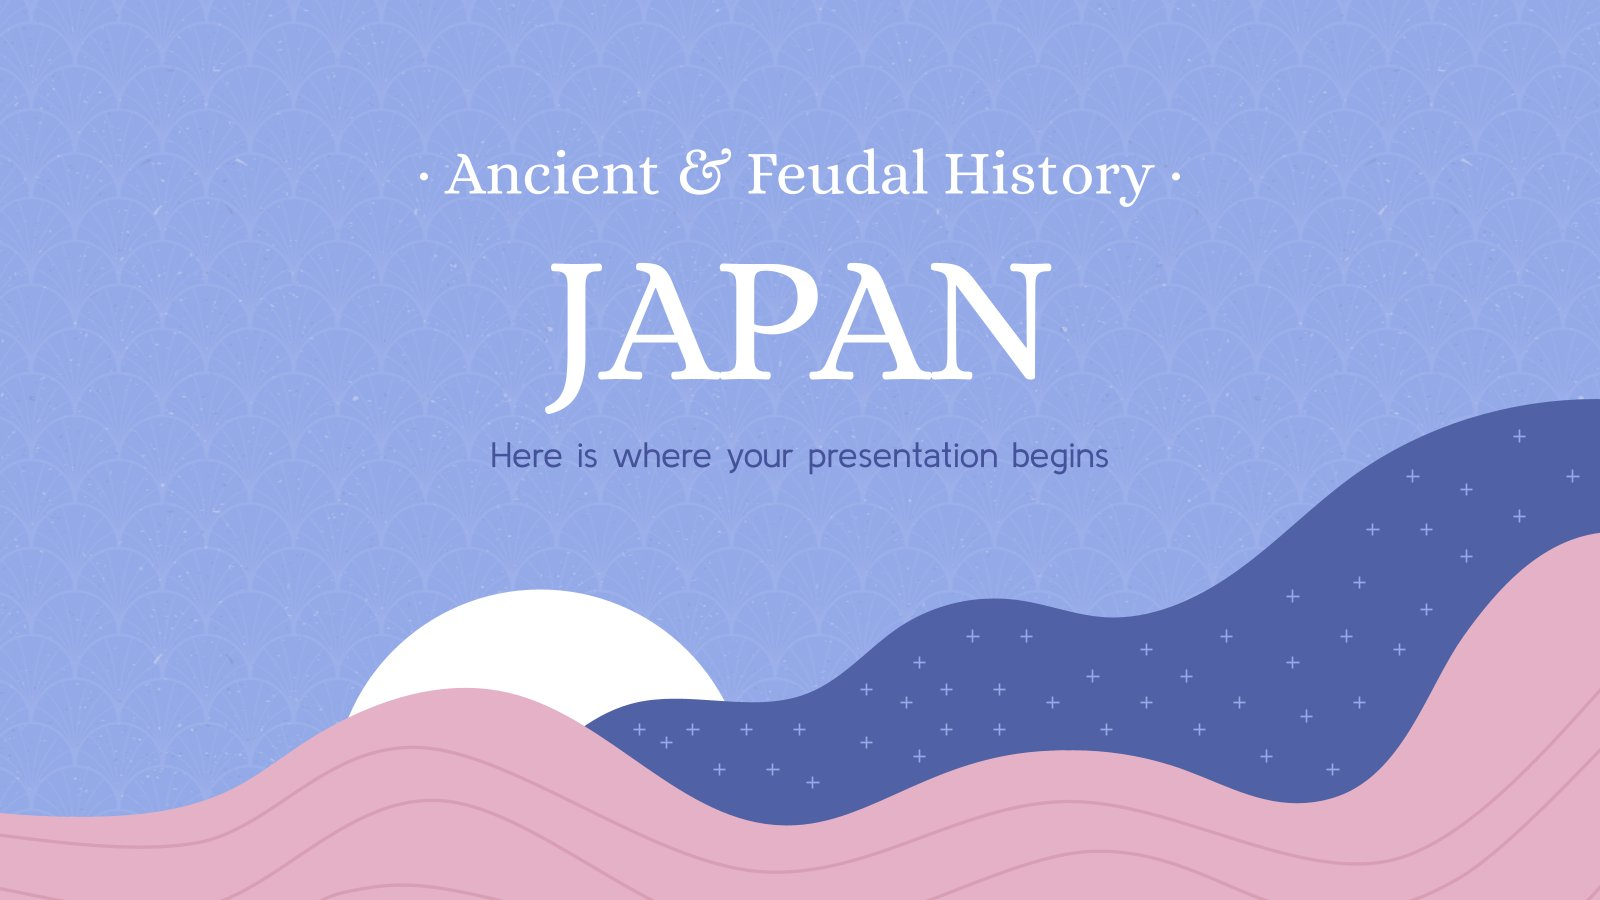 Ancient & Feudal History: Japan presentation template